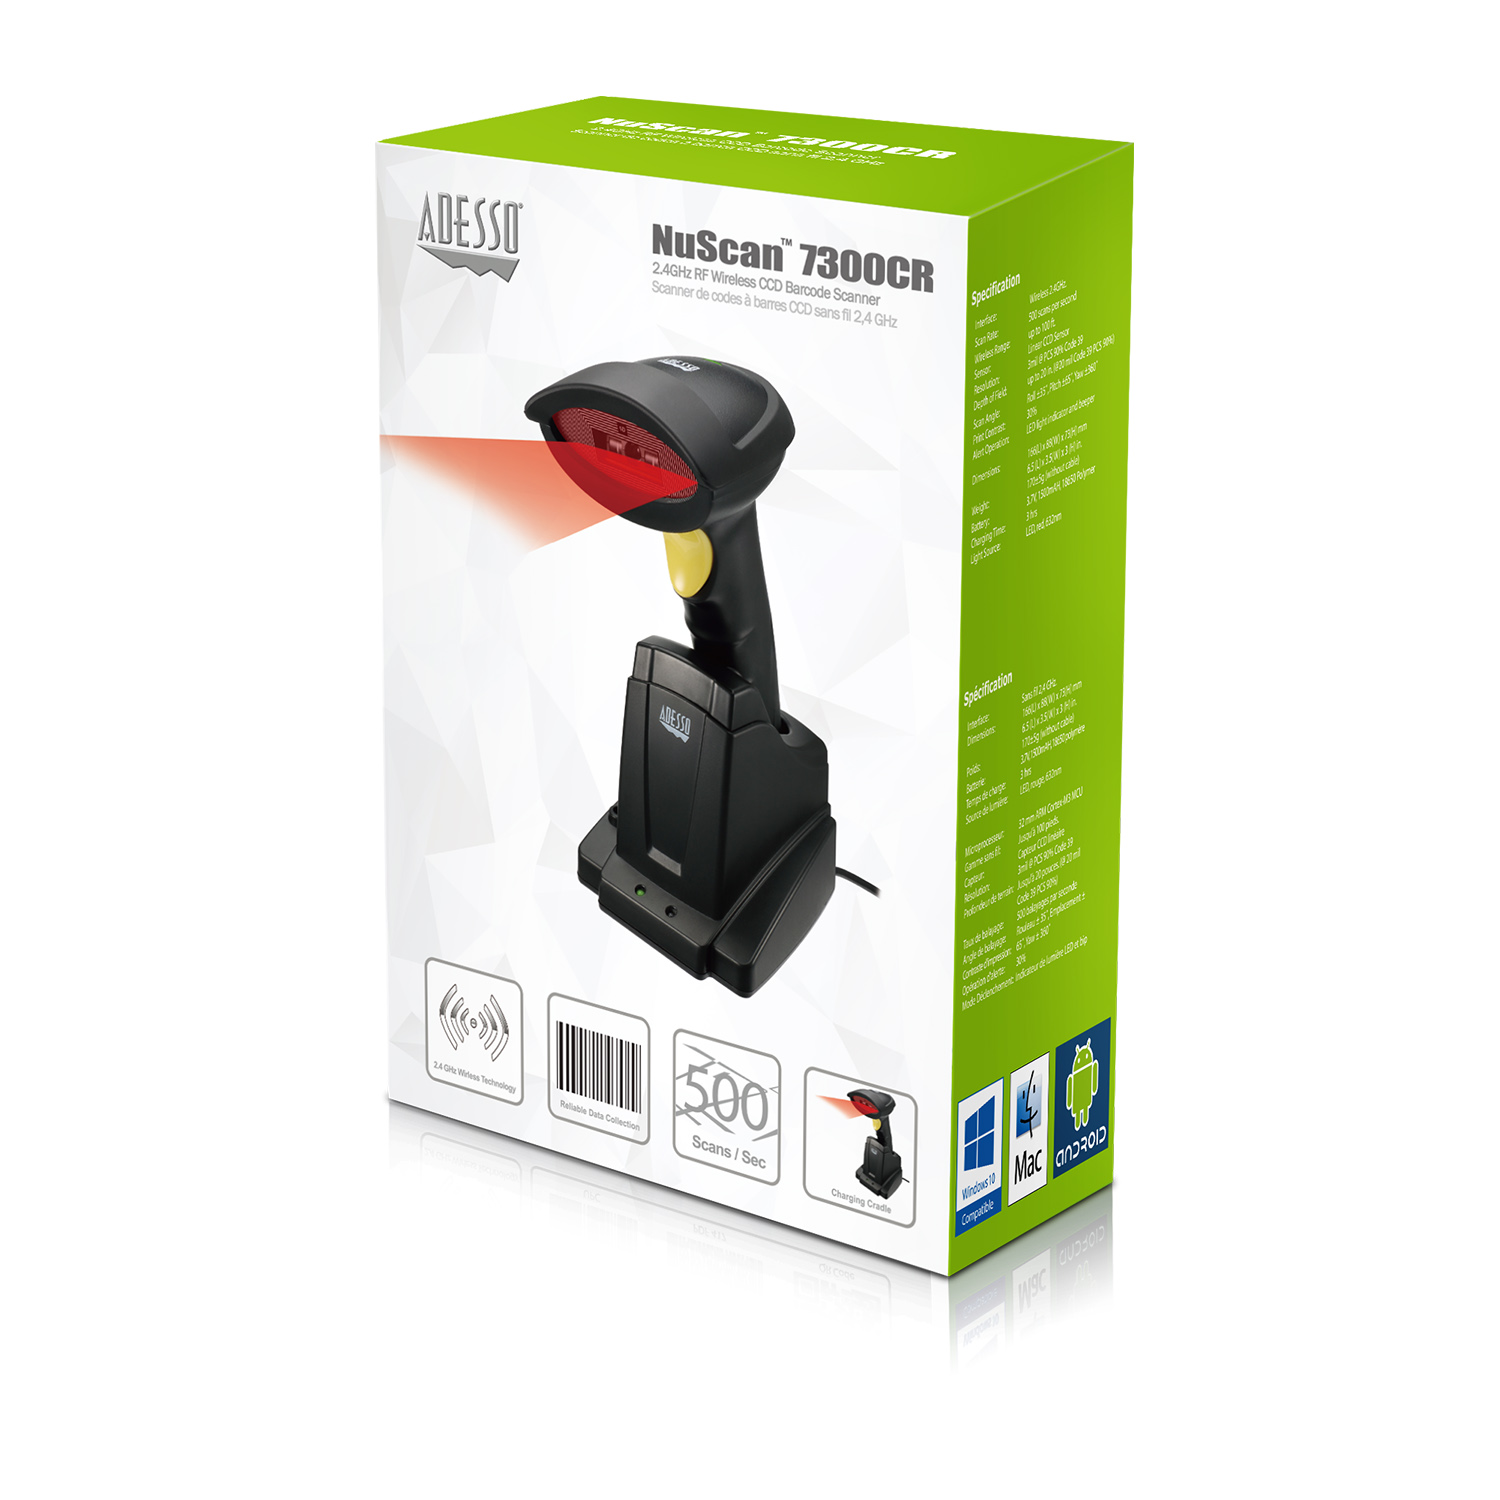 NuScan™ 7300CR Adesso 2 4 GHz Wireless CCD Barcode Scanner